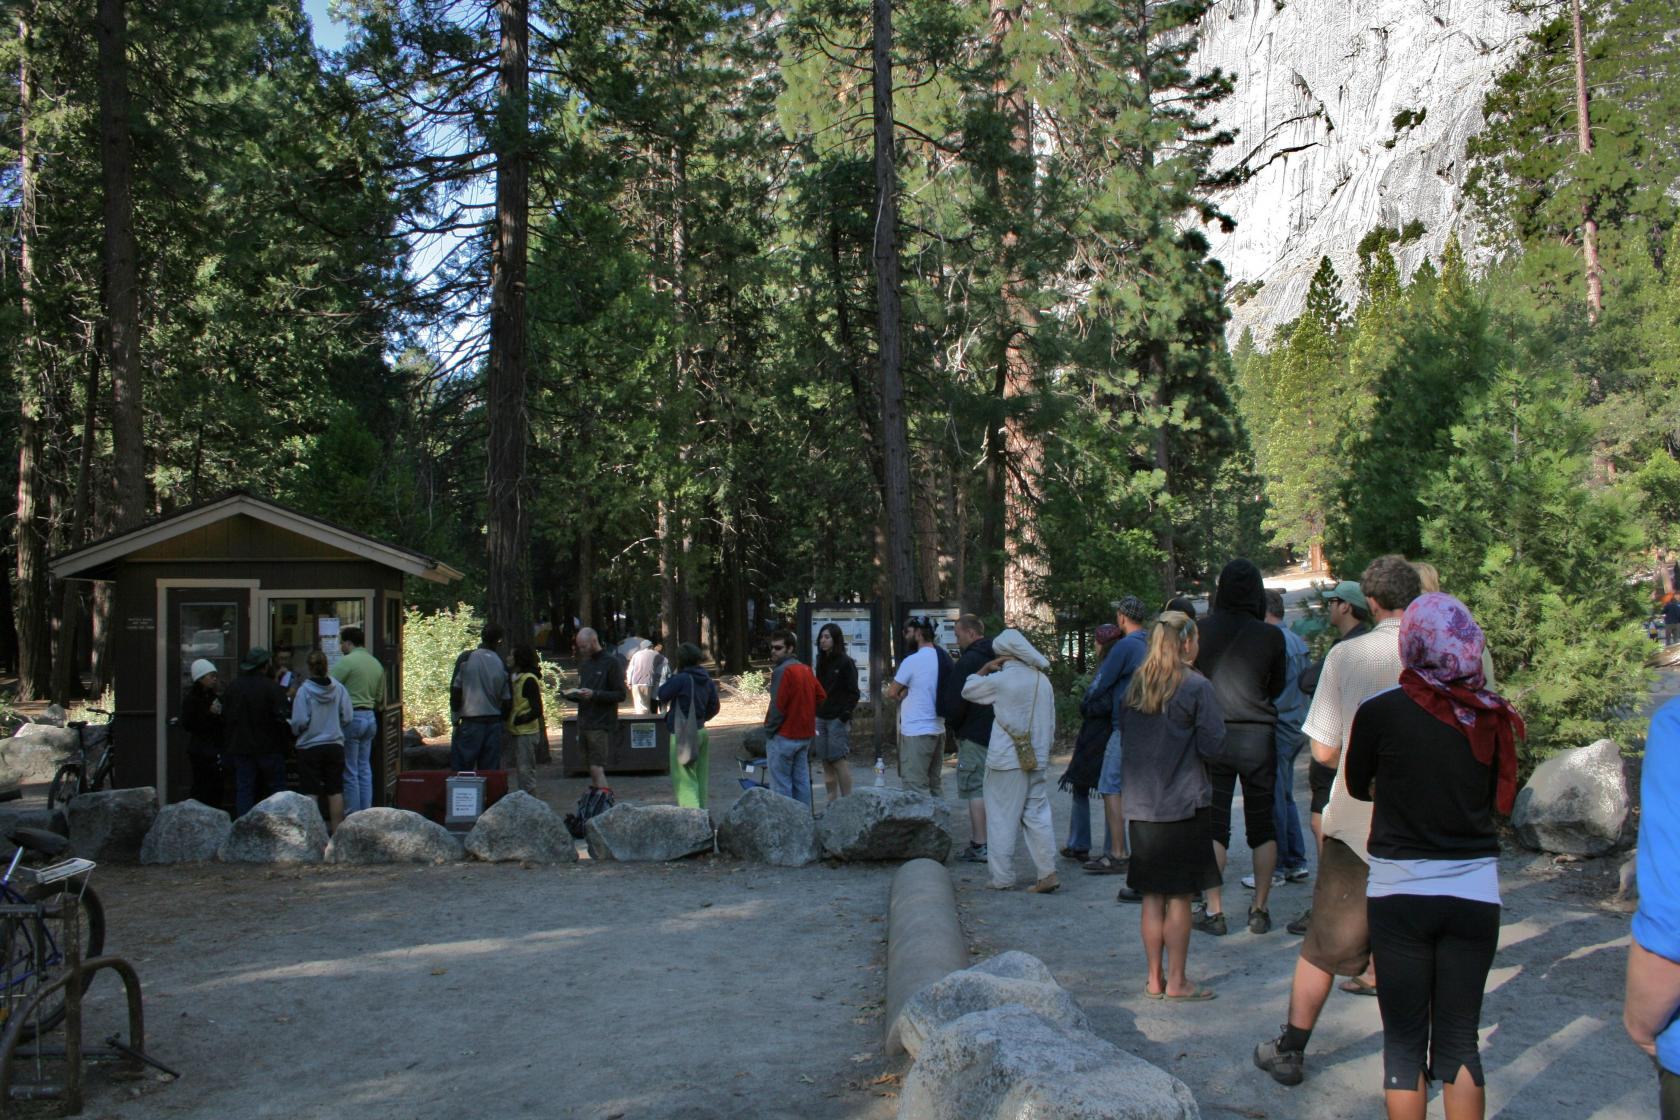 Camping In Yosemite S Camp 4 The Birthplace Of Modern